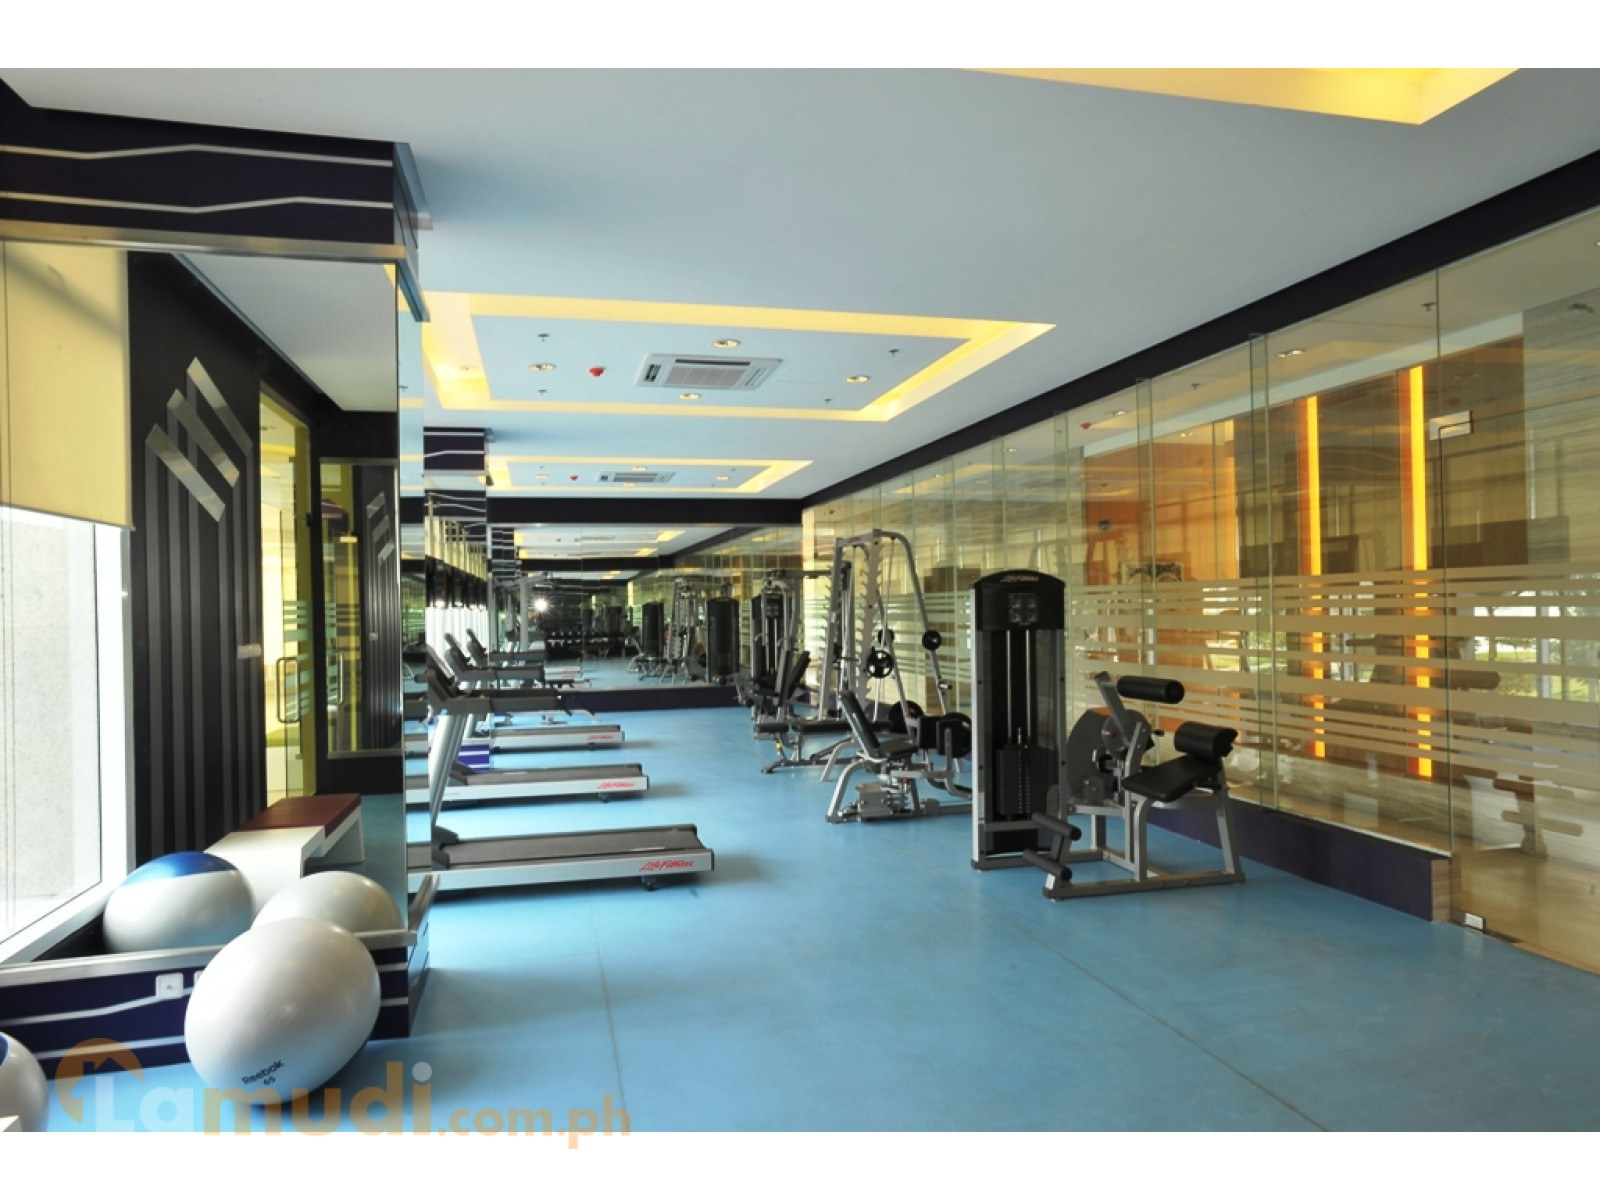 Trion Towers 1 Gym